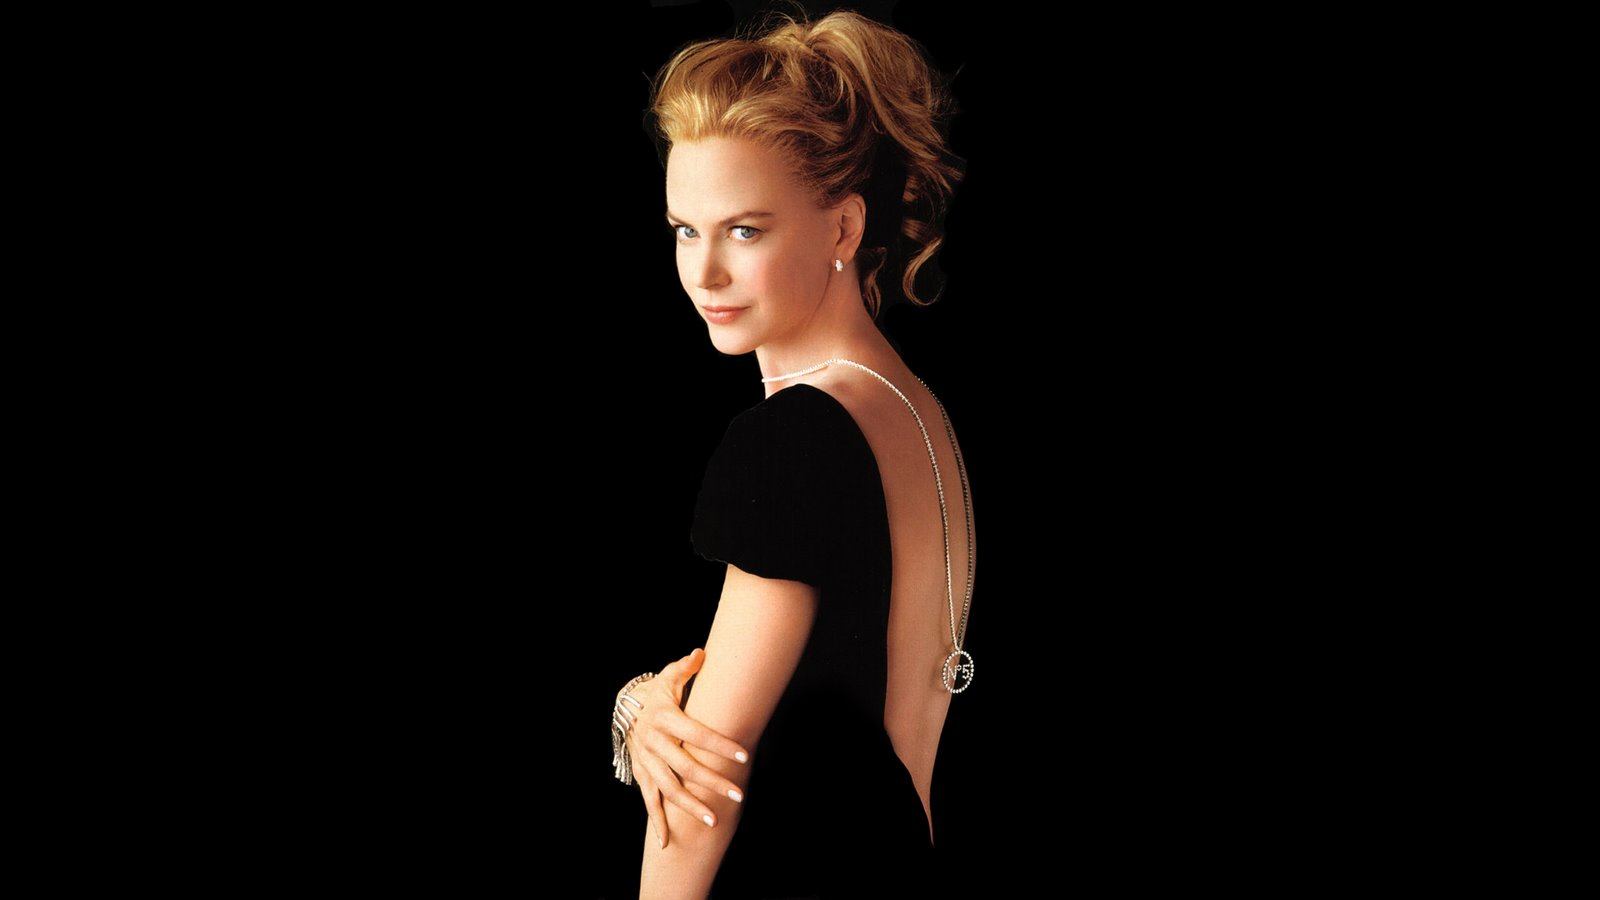 http://1.bp.blogspot.com/-DfLtyozvlc0/UEd5Gsacn1I/AAAAAAAAAnw/Zf5ITrHg6uw/s1600/Nicole+Kidman+Presents+Chanel+No.+5+by+Chanel+for+Women+2.jpg